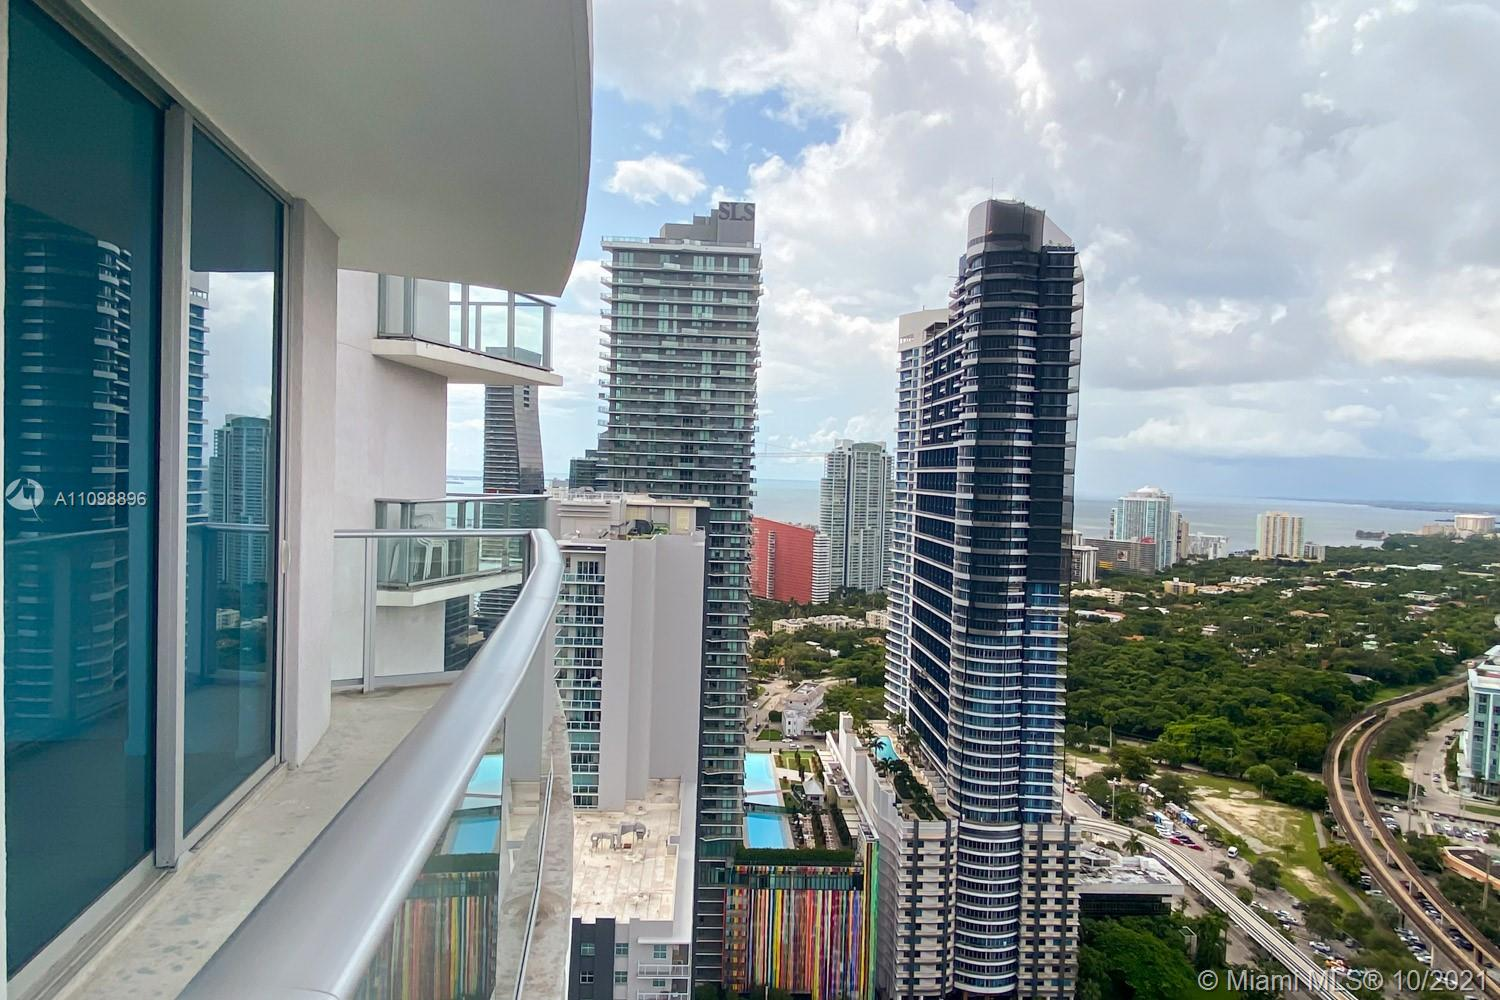 """GREAT OPPORTUNITY TO OWN A STODIO UNIT AT THE LUXURY CONDO """"MILLECENTO"""" LOCATED IN THE CENTER OF BRICKELL. THIS BEAUTIFUL STUDIO HAS AN AMAZING CITY AND BAY VIEWS. BEAUTIFUL OPEN KITCHEN WITH QUARTZ COUNTERTOPS AND ITALIAN CABINETRY WITH PRIME APPLIANCES. OFFERING 5 STARS AMENITIES; ROOFTOP POOL ON THE 43rd FLOOR AND LOWER LEVEL POOL, LOUNGE ROOM, KIDS ROOM, MOVIE THEATER, FITNESS CENTER, SOCIAL & BUSINESS CENTER AND CHILDREN'S PLAY ROOM. BUILDING HAS 24 HOUR CONCIERGE, SECURITY AND VALET PARKING. JUST STEPS AWAY FROM MARY BRICKELL VILLAGE AND BRICKEL CITY CENTER."""